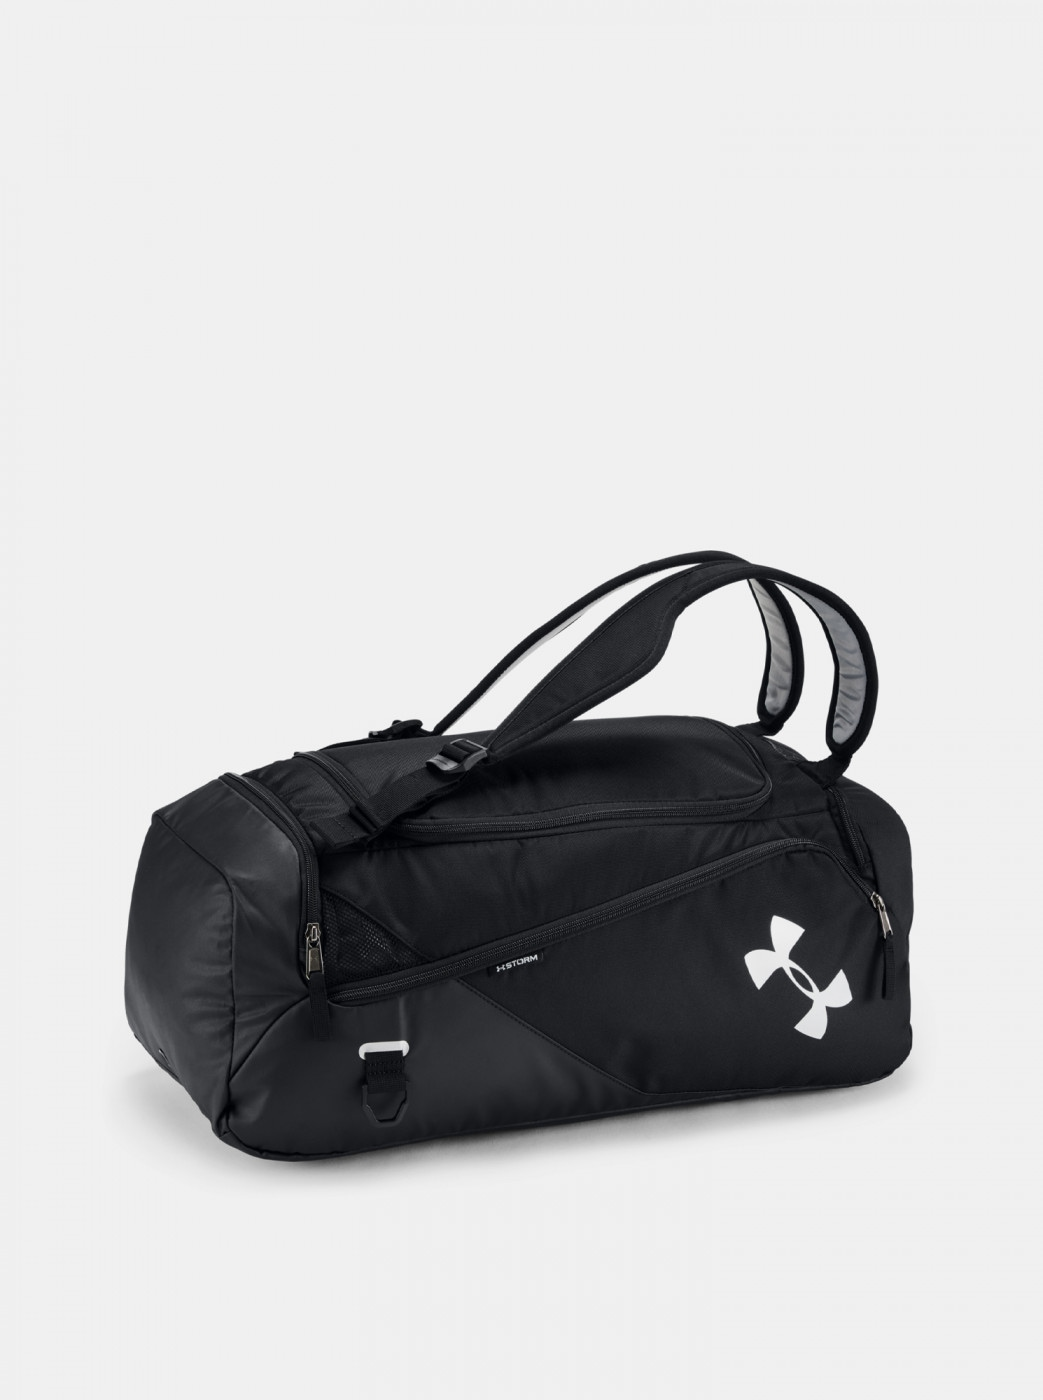 Black Sports Bag Contain Duo Under Armour